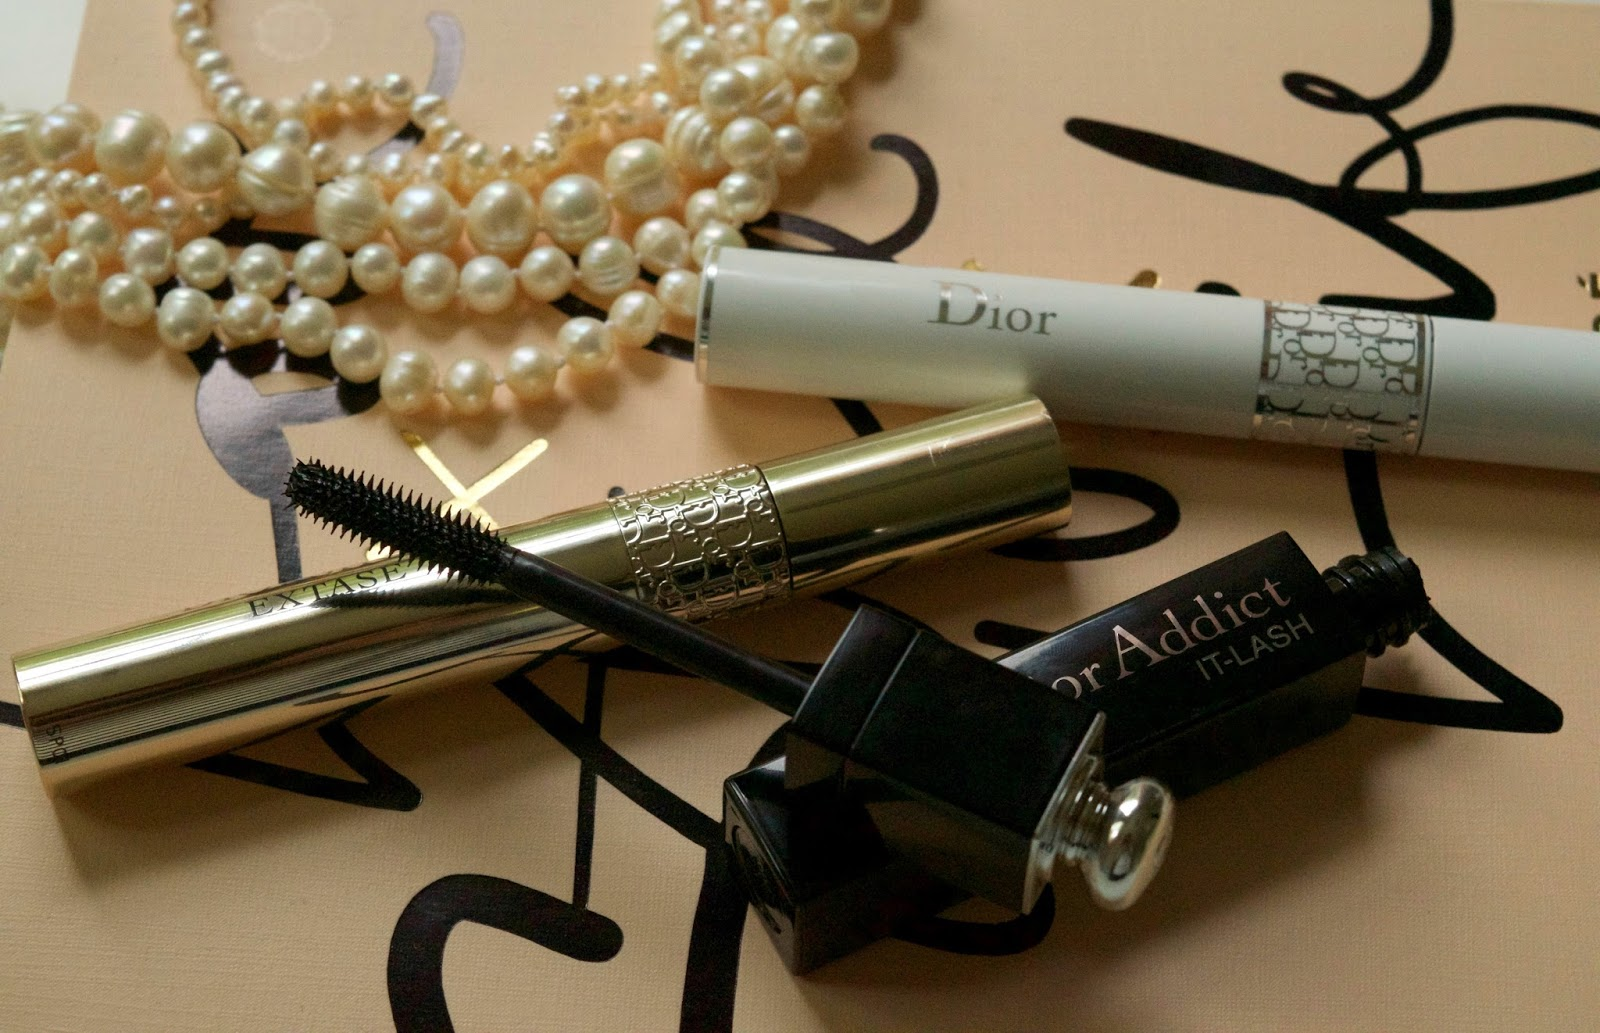 dior mascara review - dior addict it-lash review - dior plumping primer review - dior mascaras worth the splurge